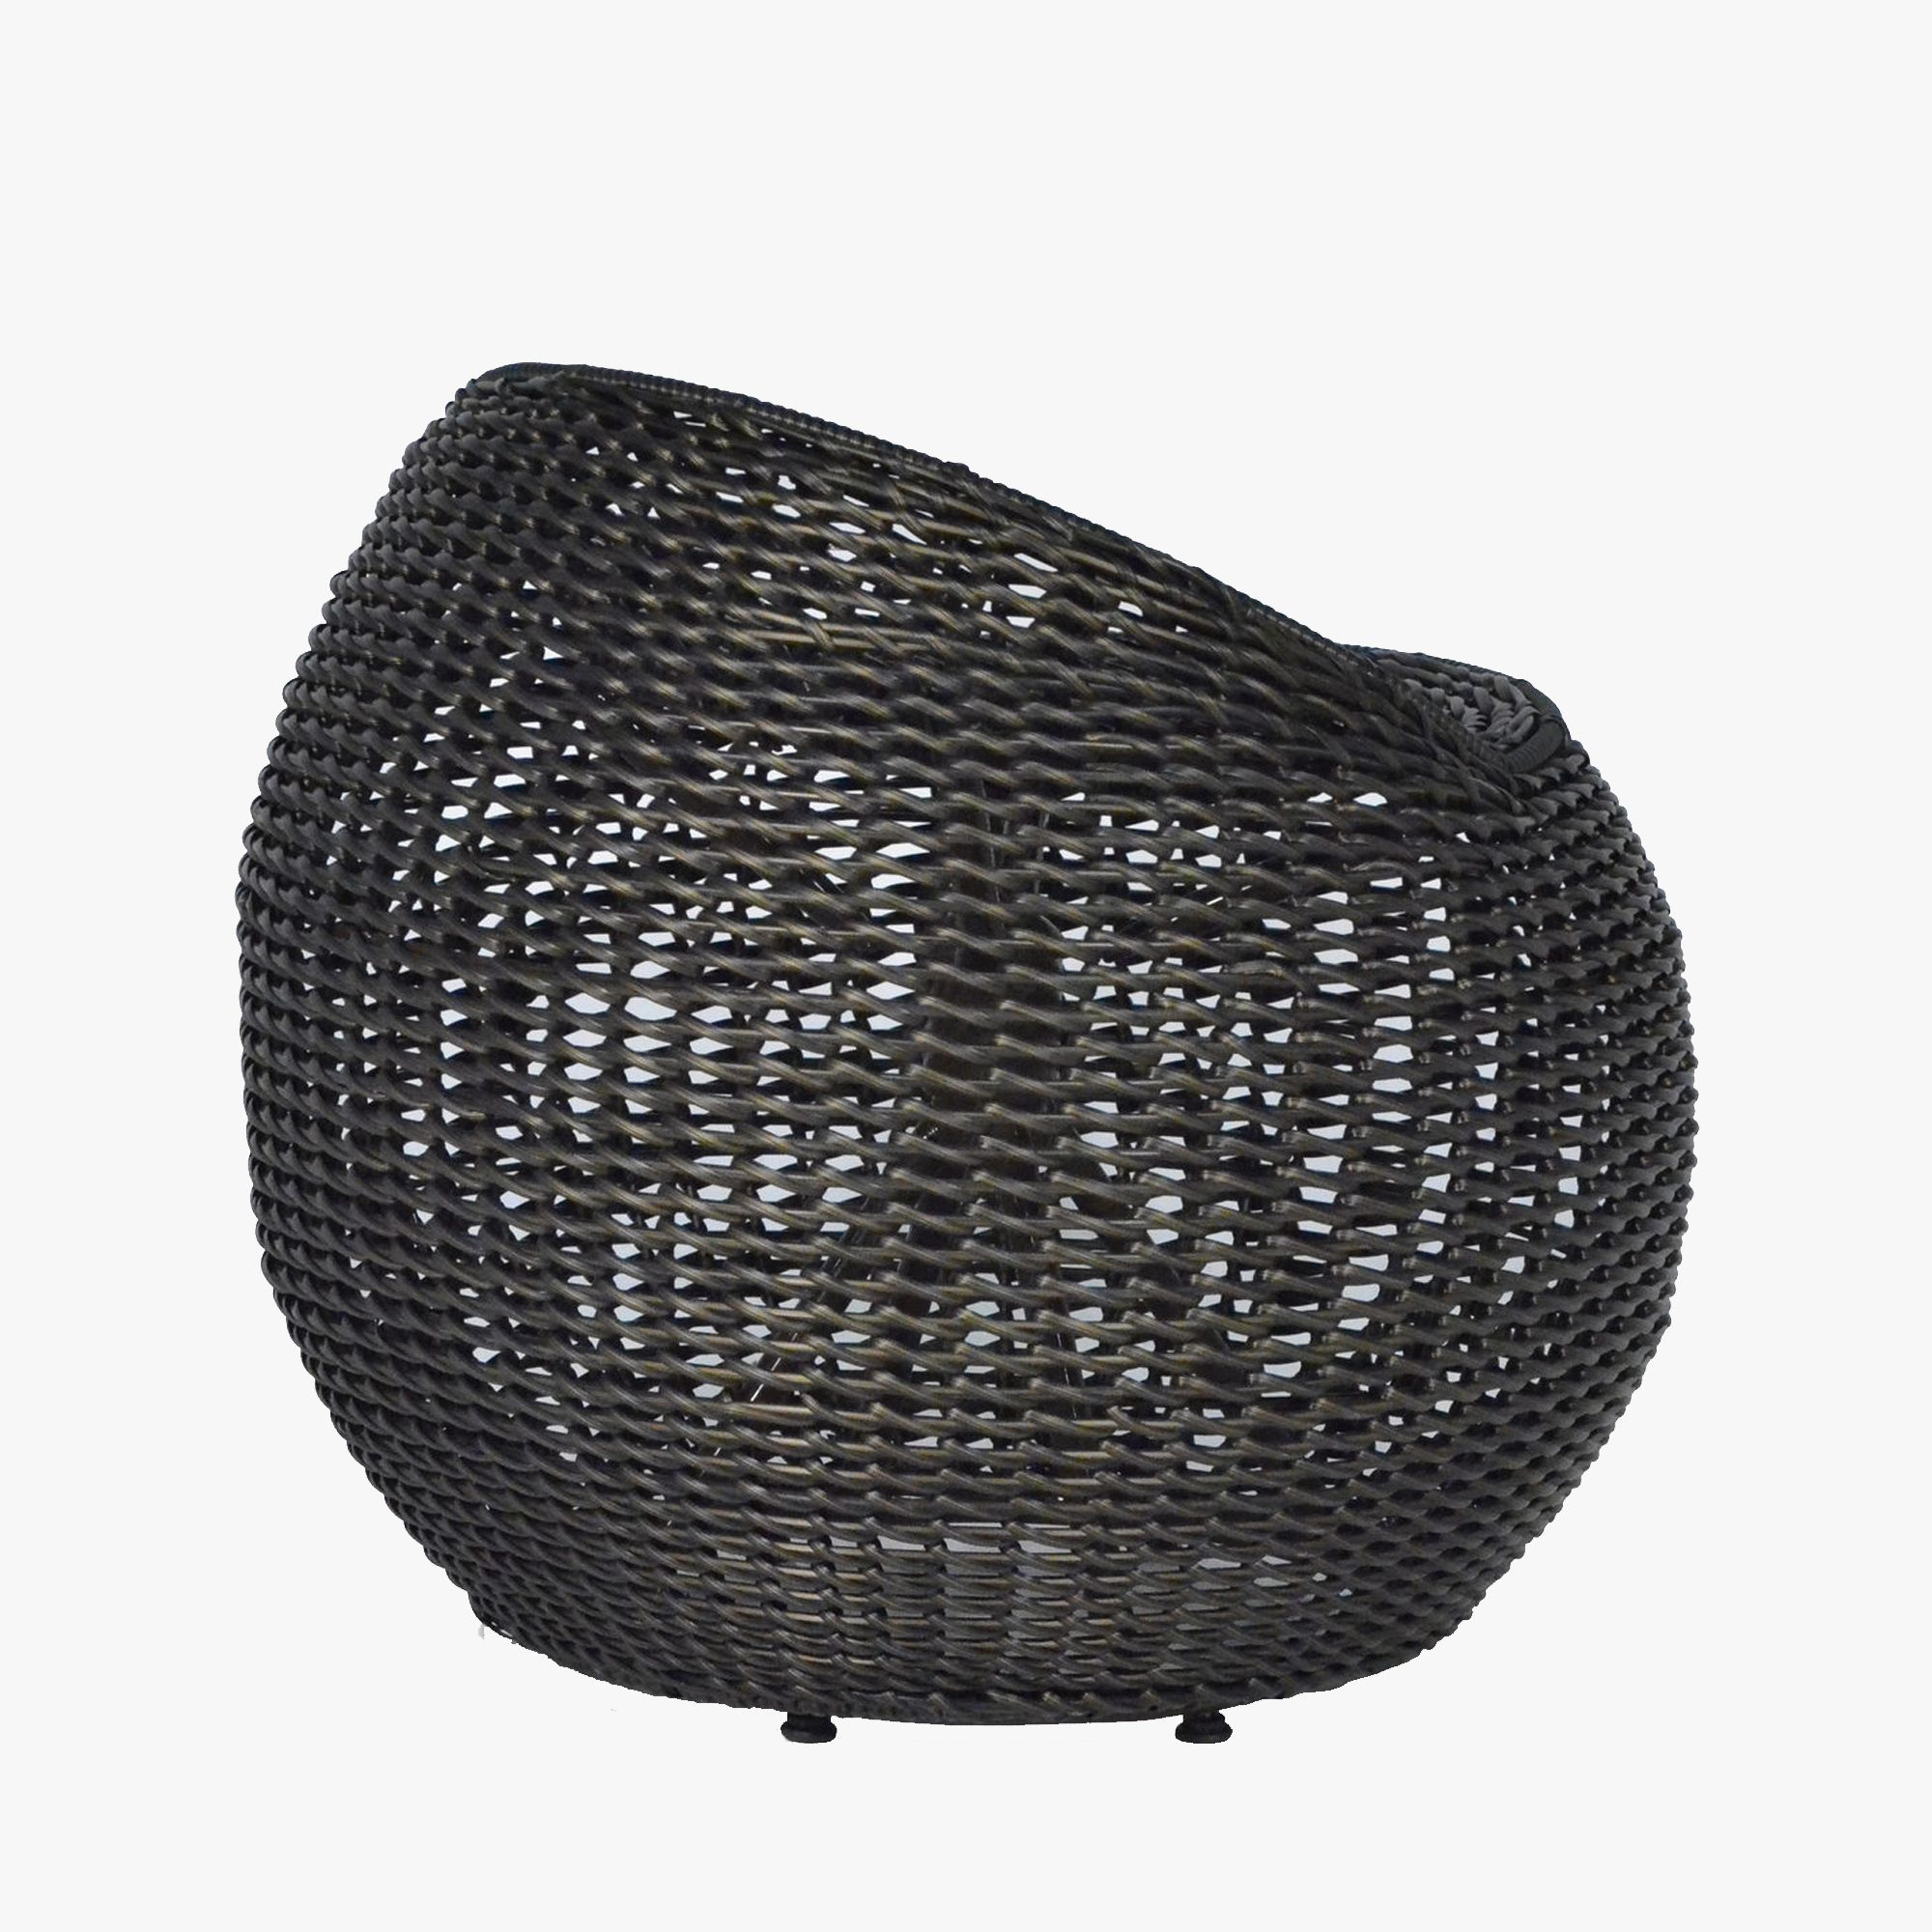 Our black outdoor open weave wicker swivel stool from Palecek exudes casual comfort. This chic all-weather stool is perfect for casual outdoor living.